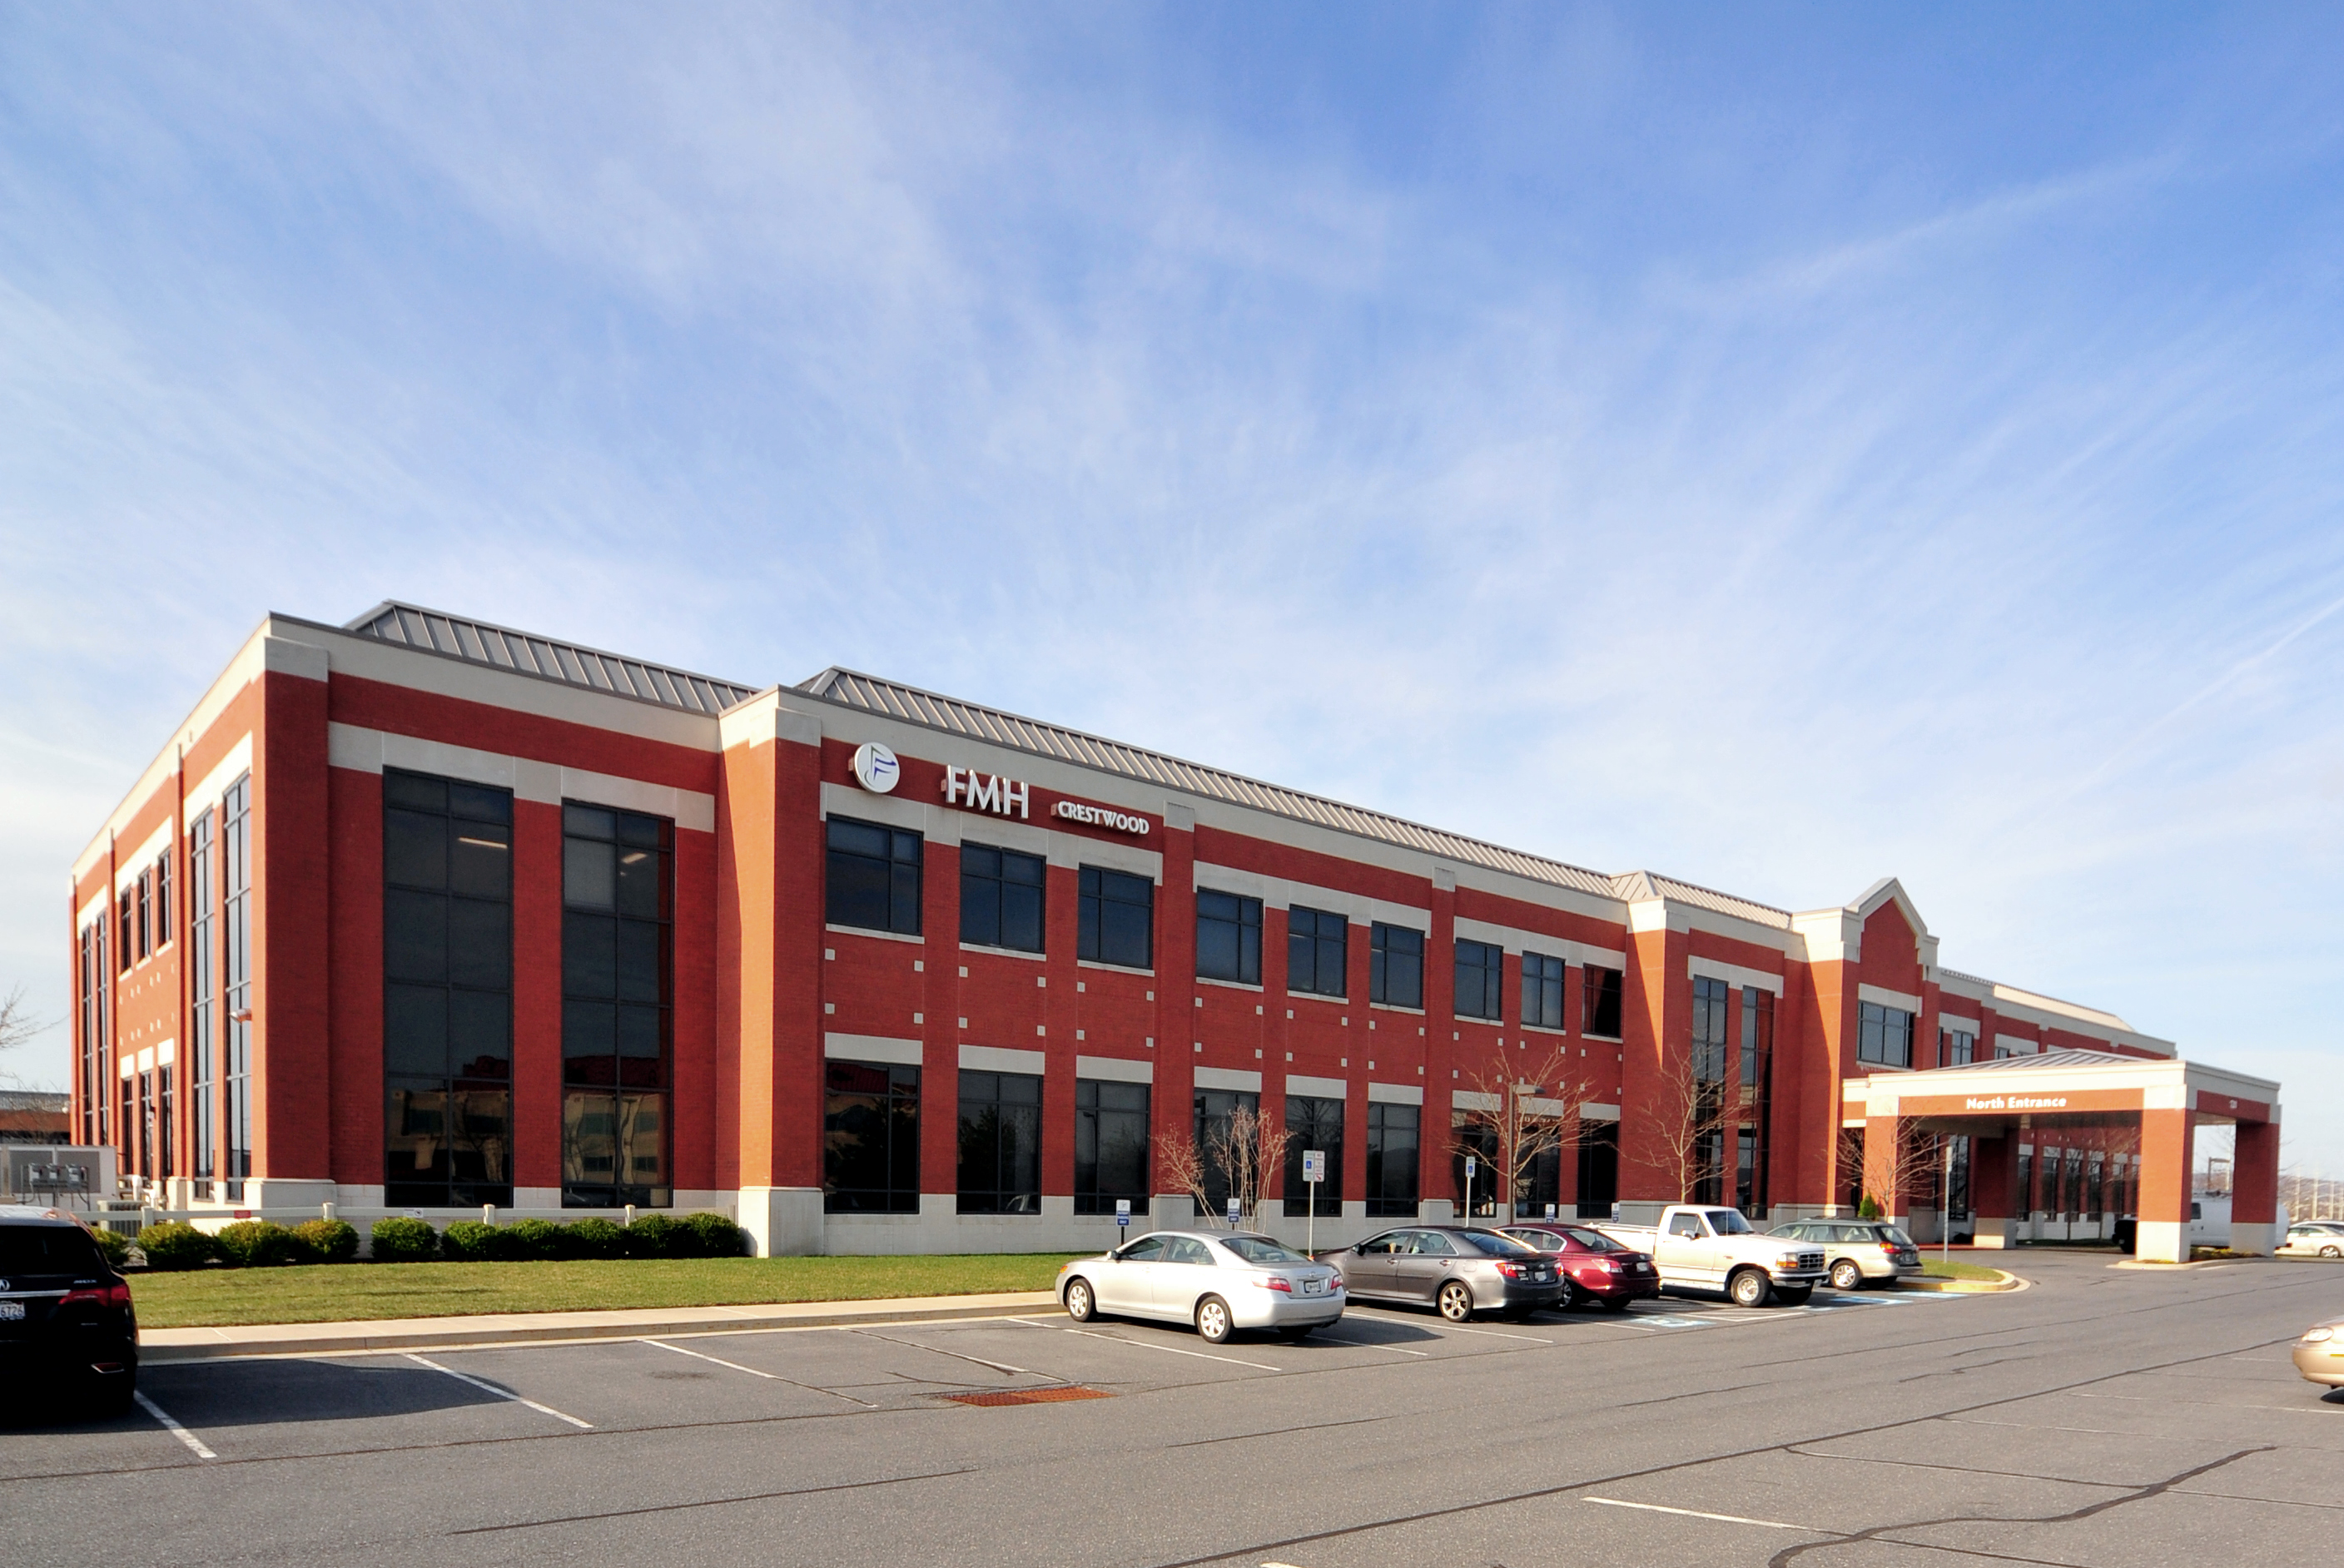 The two-story, 62,297 square foot FMH Crestwood medical office building in Frederick, Md., is 100 percent occupied by the area's dominant hospital, Frederick Memorial. The property is being marketed by JLL's Healthcare Capital Markets team. Photo courtesy of JLL